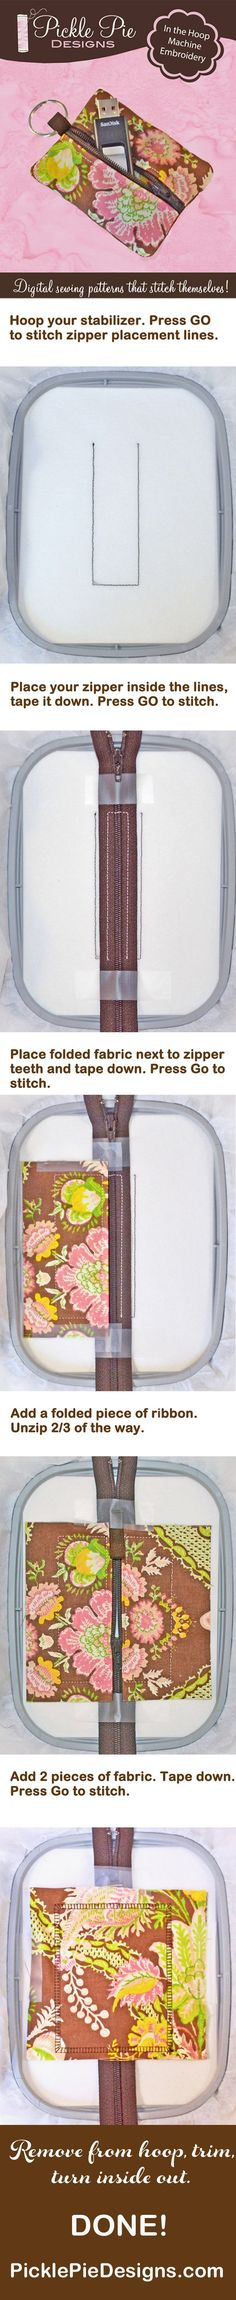 Heard the buzz about \in the hoop\ machine embroidery?! If you own an embroidery machine you can make this FAST FUN and EASY zipper case project - even if you don't know how to sew!!! Check out PicklePieDesigns.com for your new addiction! #machinembroidery #inthehoop